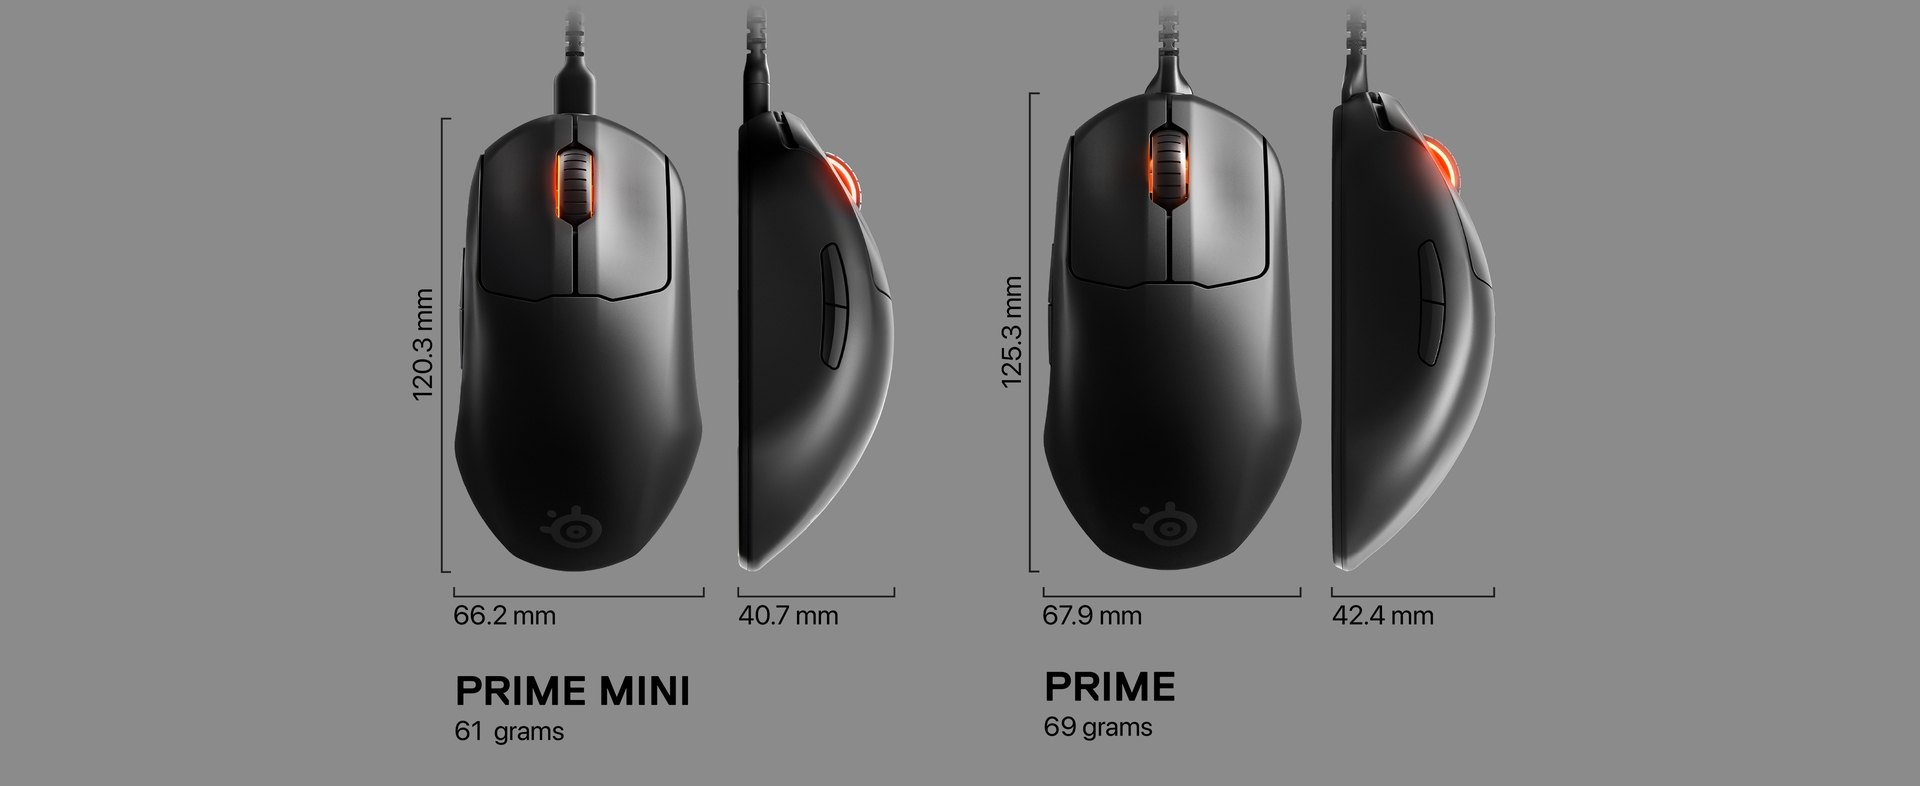 A diagram showing the size difference between the Prime and Prime Mini. Text left: Prime Mini, 61 grams. Text right: Prime, 69 grams.